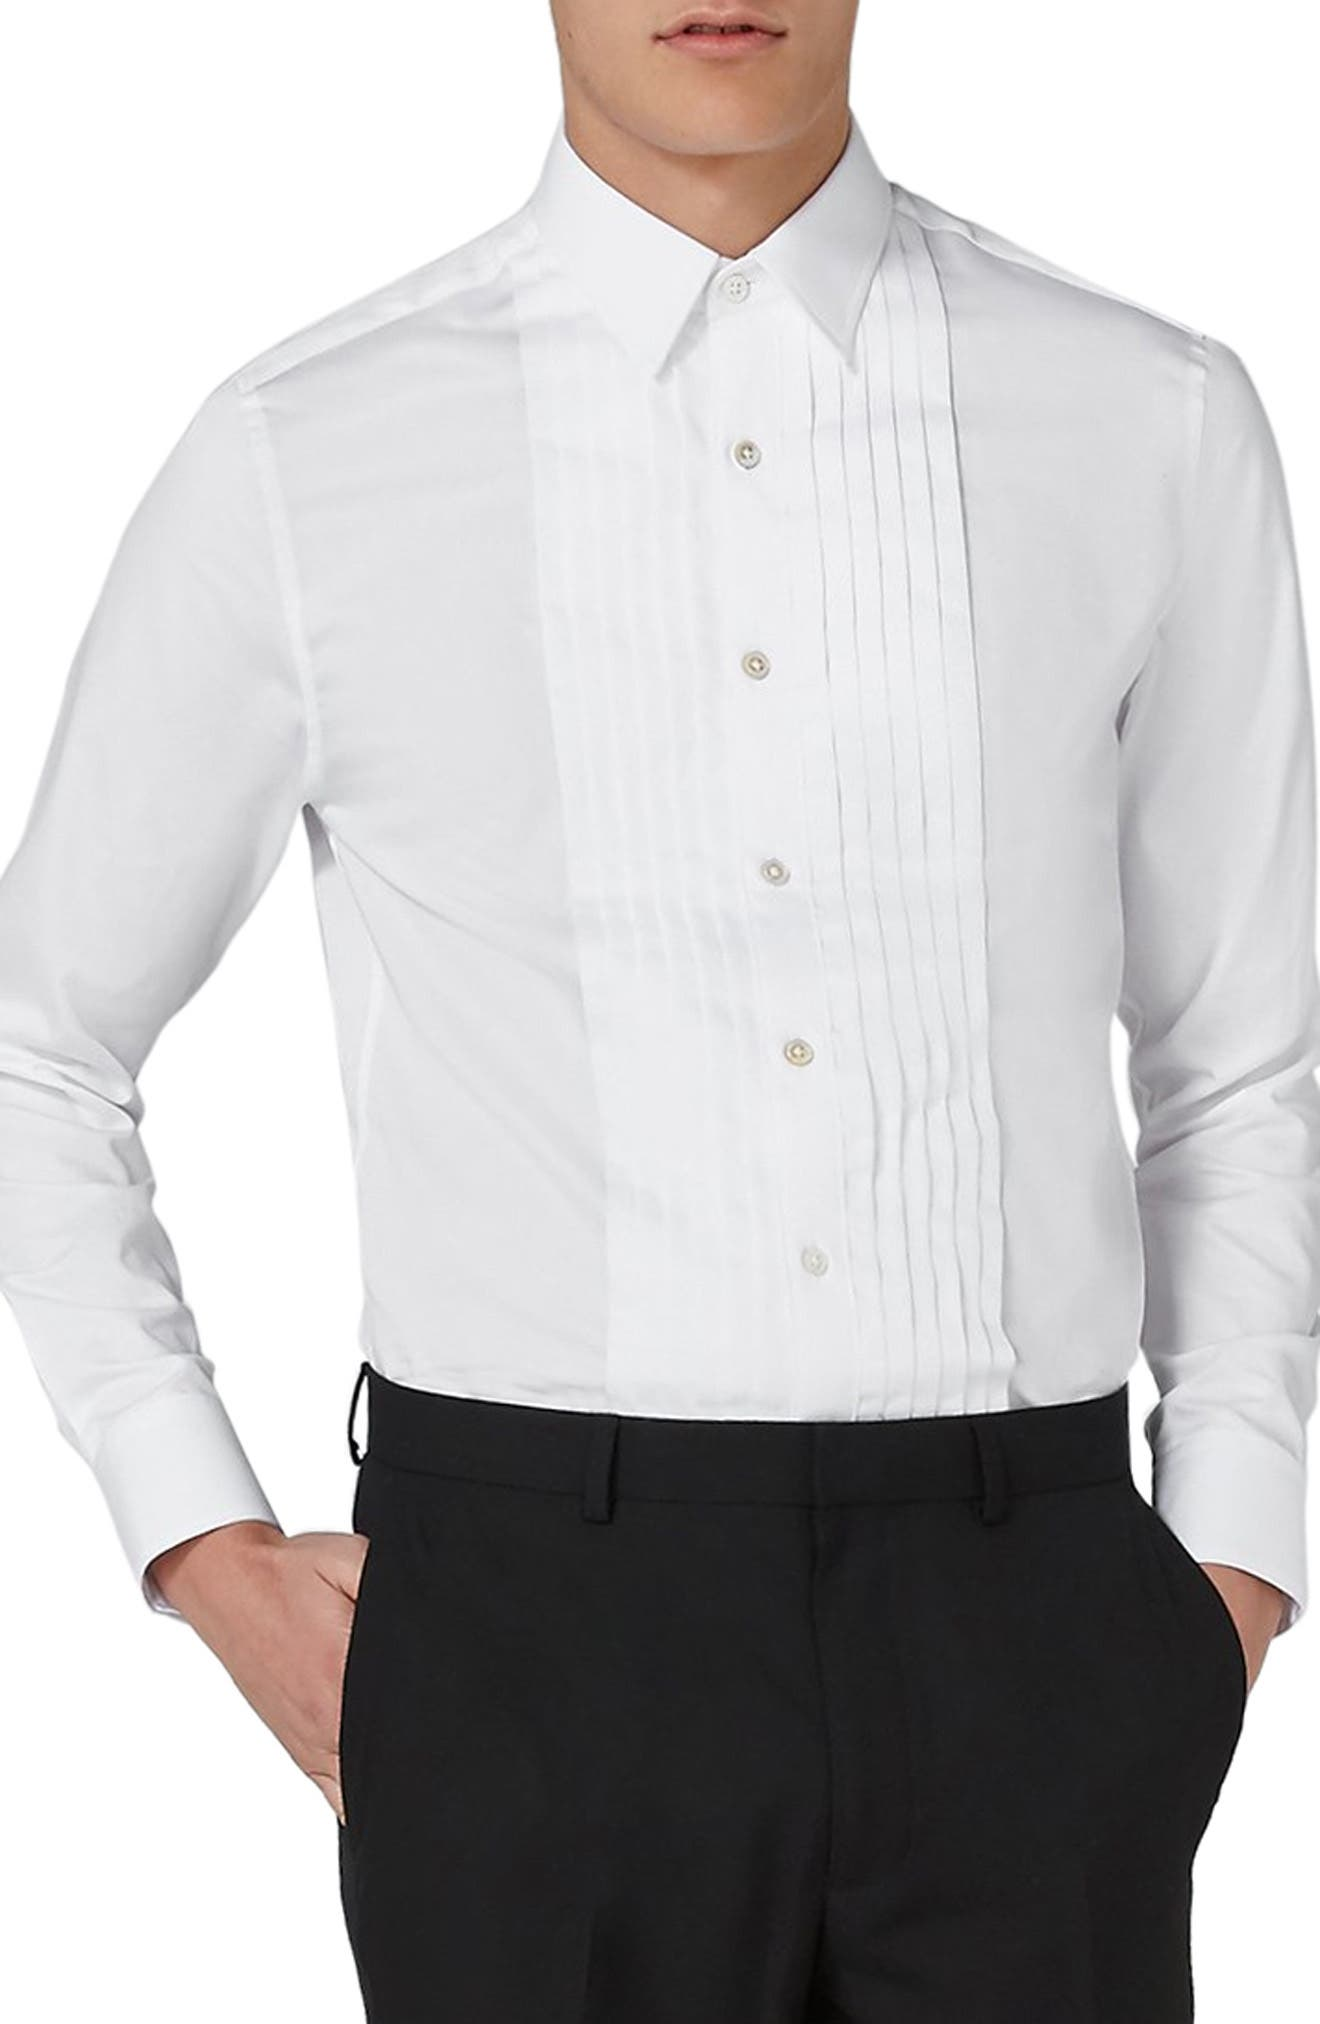 Pleated Tuxedo Shirt,                         Main,                         color, White